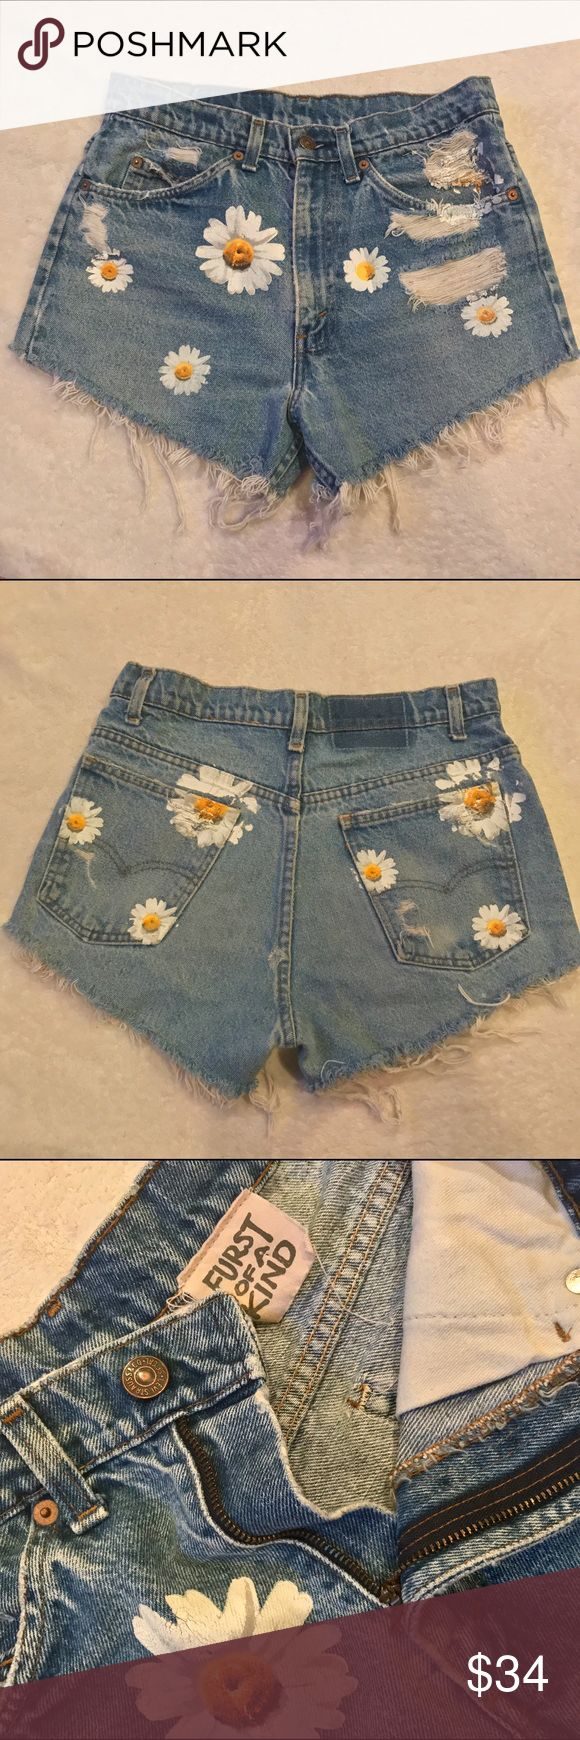 """LF high waisted Jean shorts Sun flower designed high waisted Jean shorts from LF. As shown the photo of the back of the shorts there is a minor hole (not noticeable when on) They are one size fits all, but i'm a 26 in jeans and shorts and these fit me. Measurements are: 29"""" waist, 38"""" hips, 23"""" thigh,inseam 3"""", front rise 12"""". They are perfect shorts for a festival like Coachella! LF Shorts Jean Shorts"""